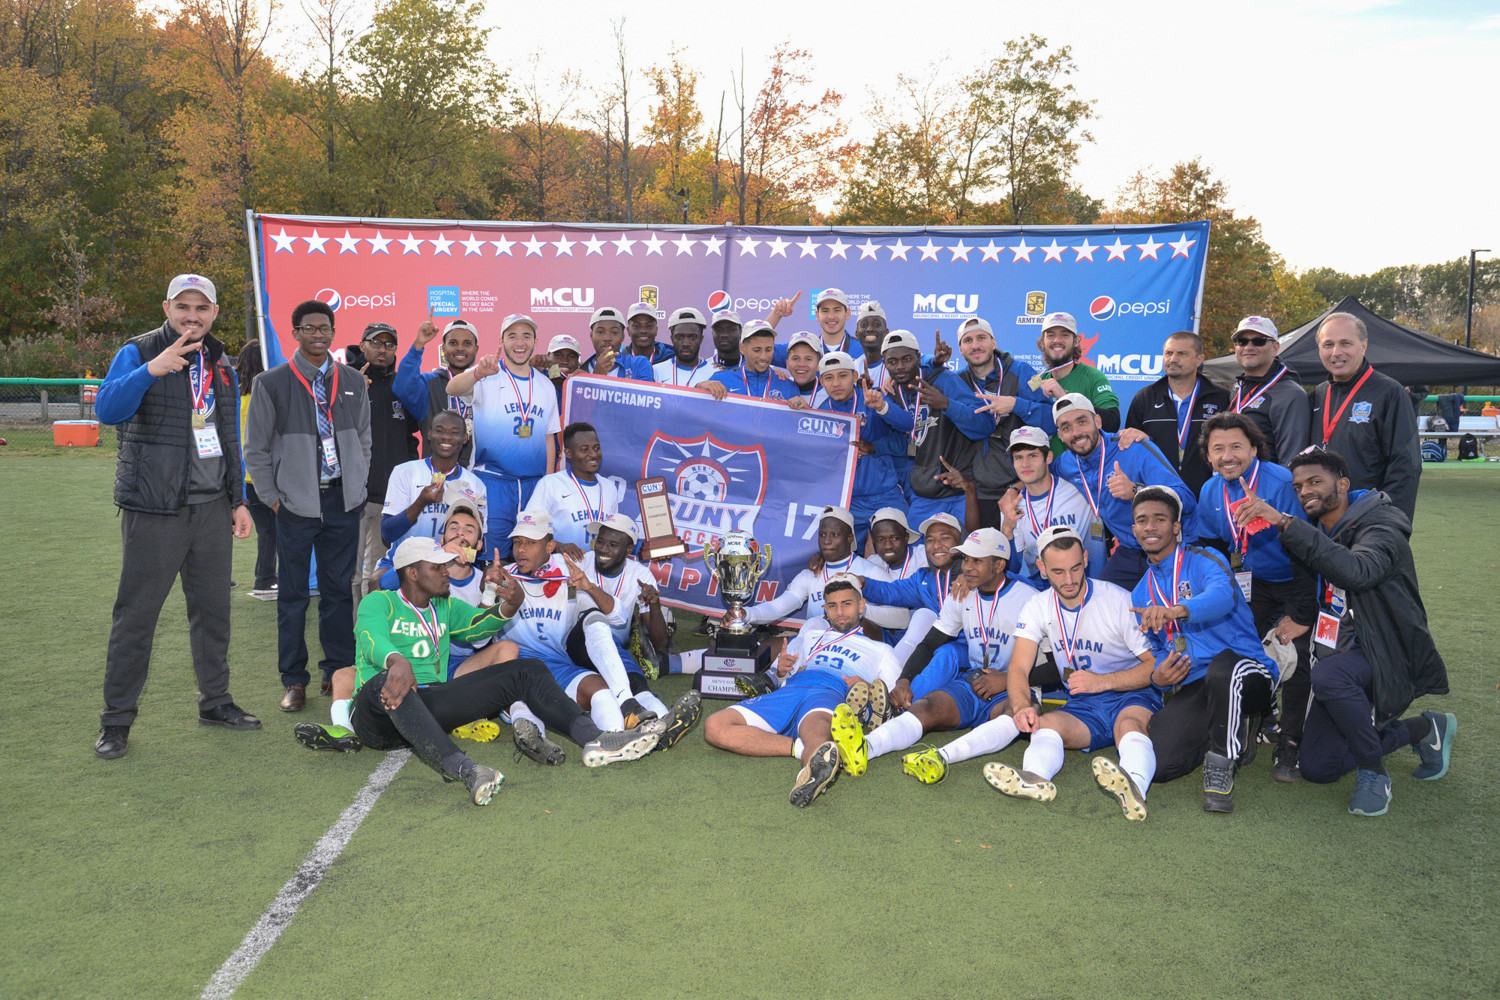 The Lehman men's soccer team celebrates its second consecutive CUNYAC title after its 3-1 victory over John Jay.